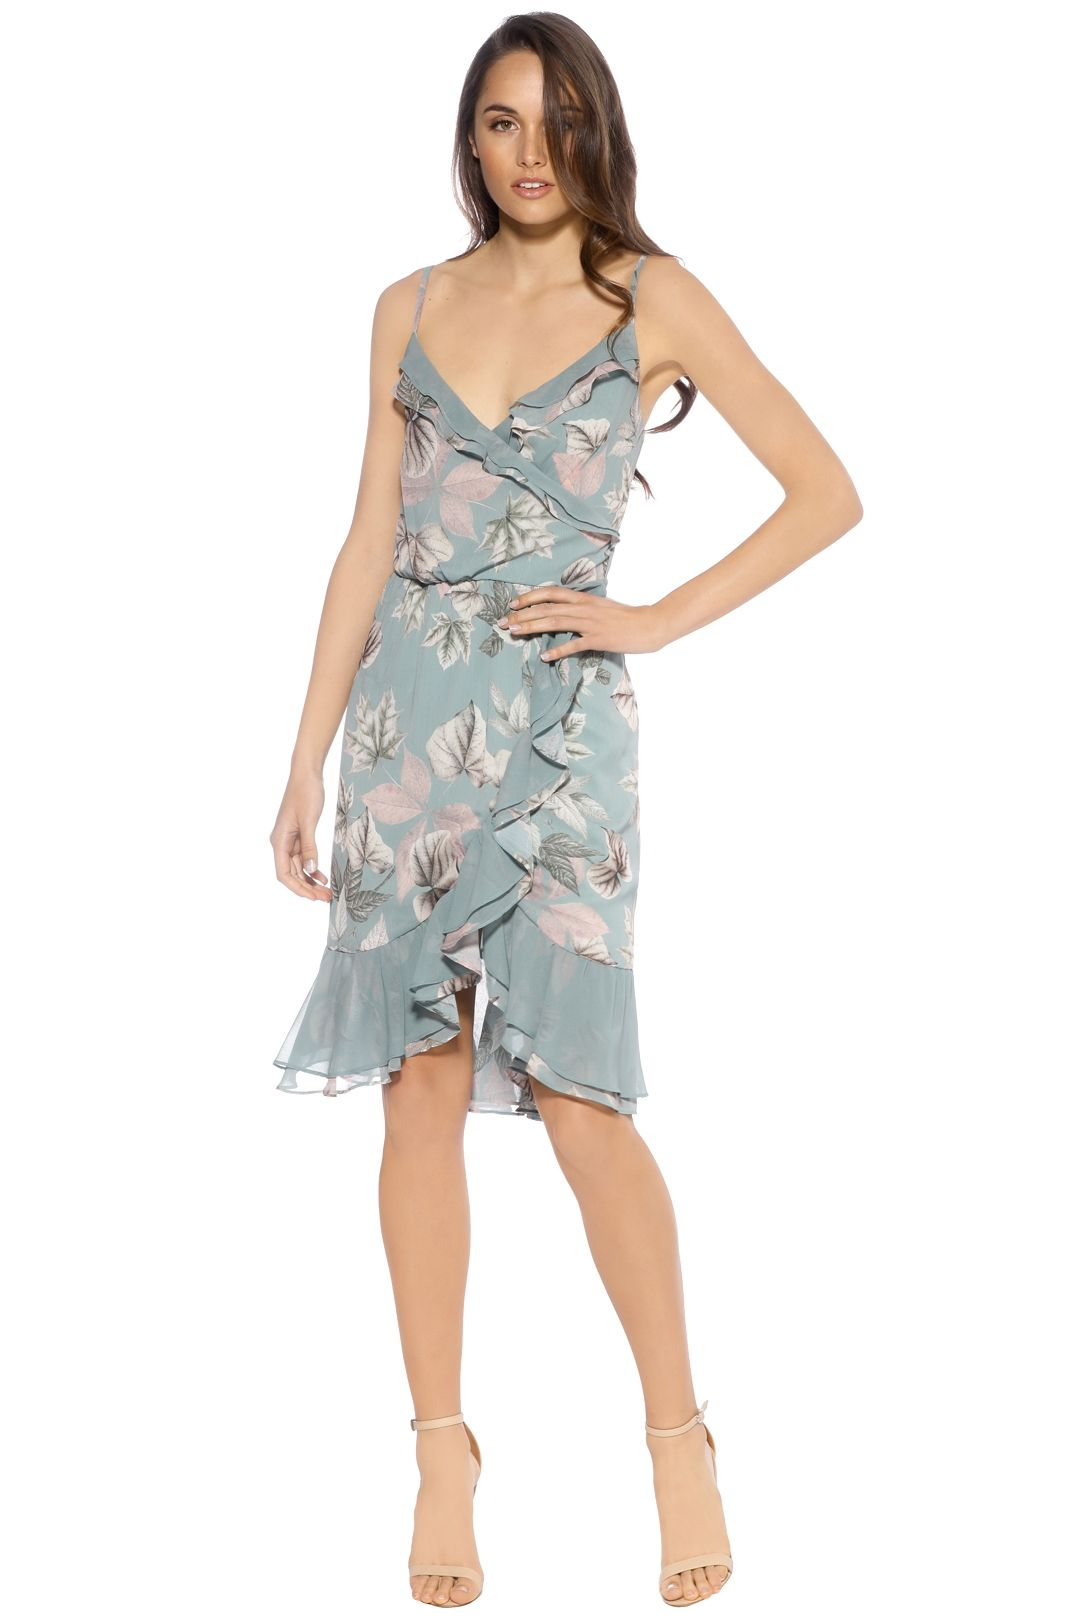 We Are Kindred - Sibella Ruffle Wrap Dress - Front - Teal